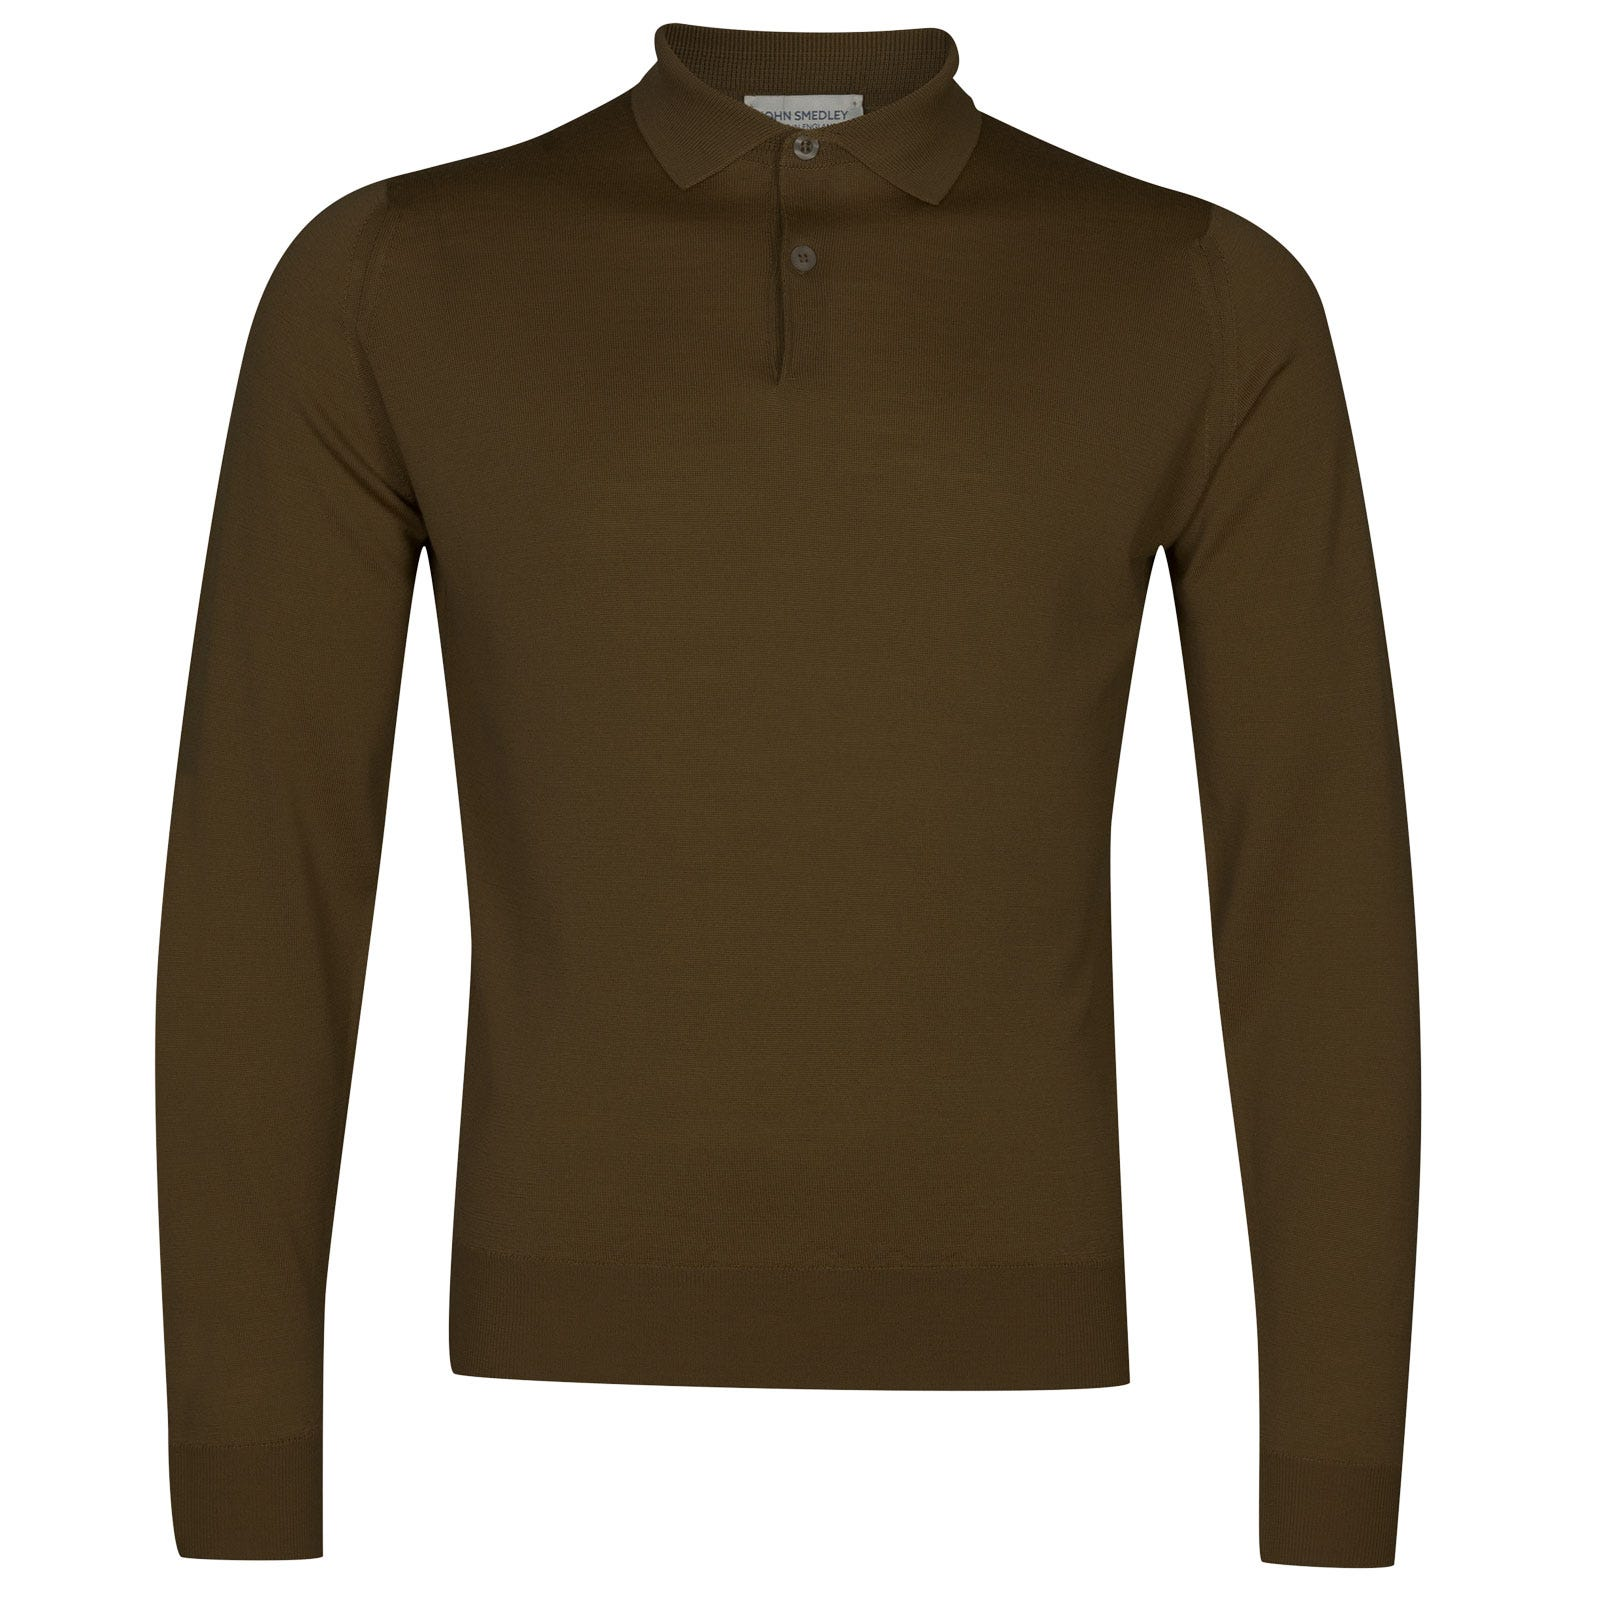 John Smedley garda Merino Wool Shirt in Kielder Green-XL